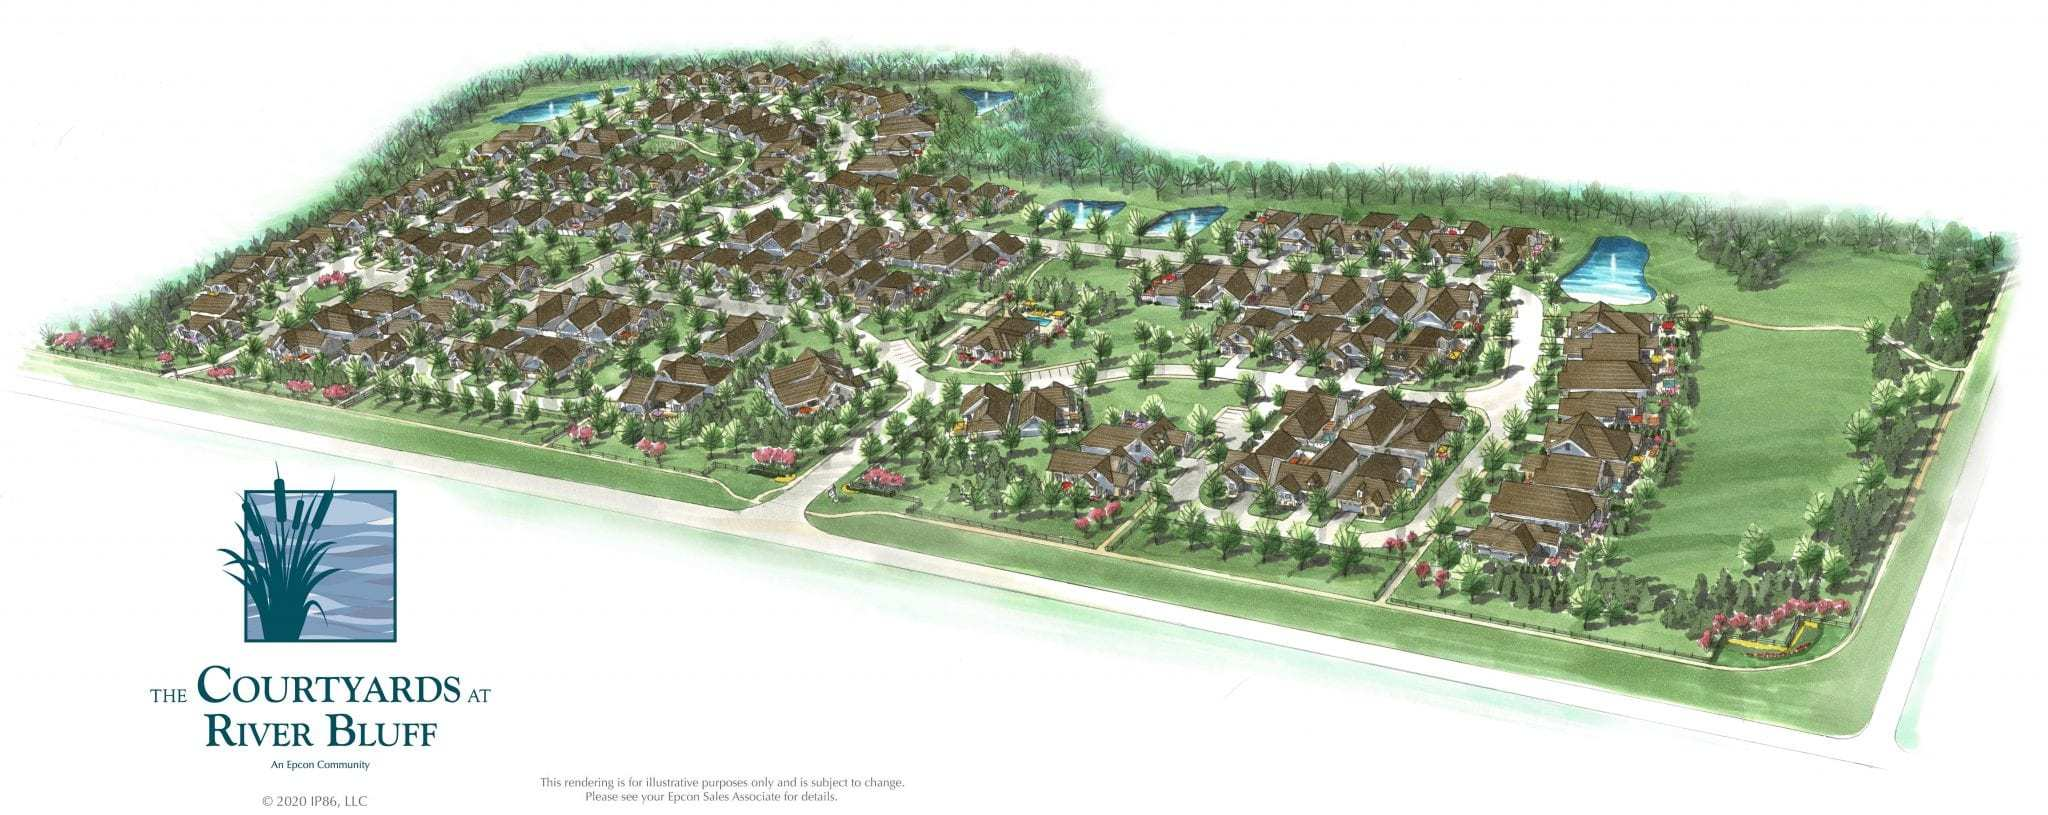 'The Courtyards at River Bluff' by Epcon Communities in Columbus